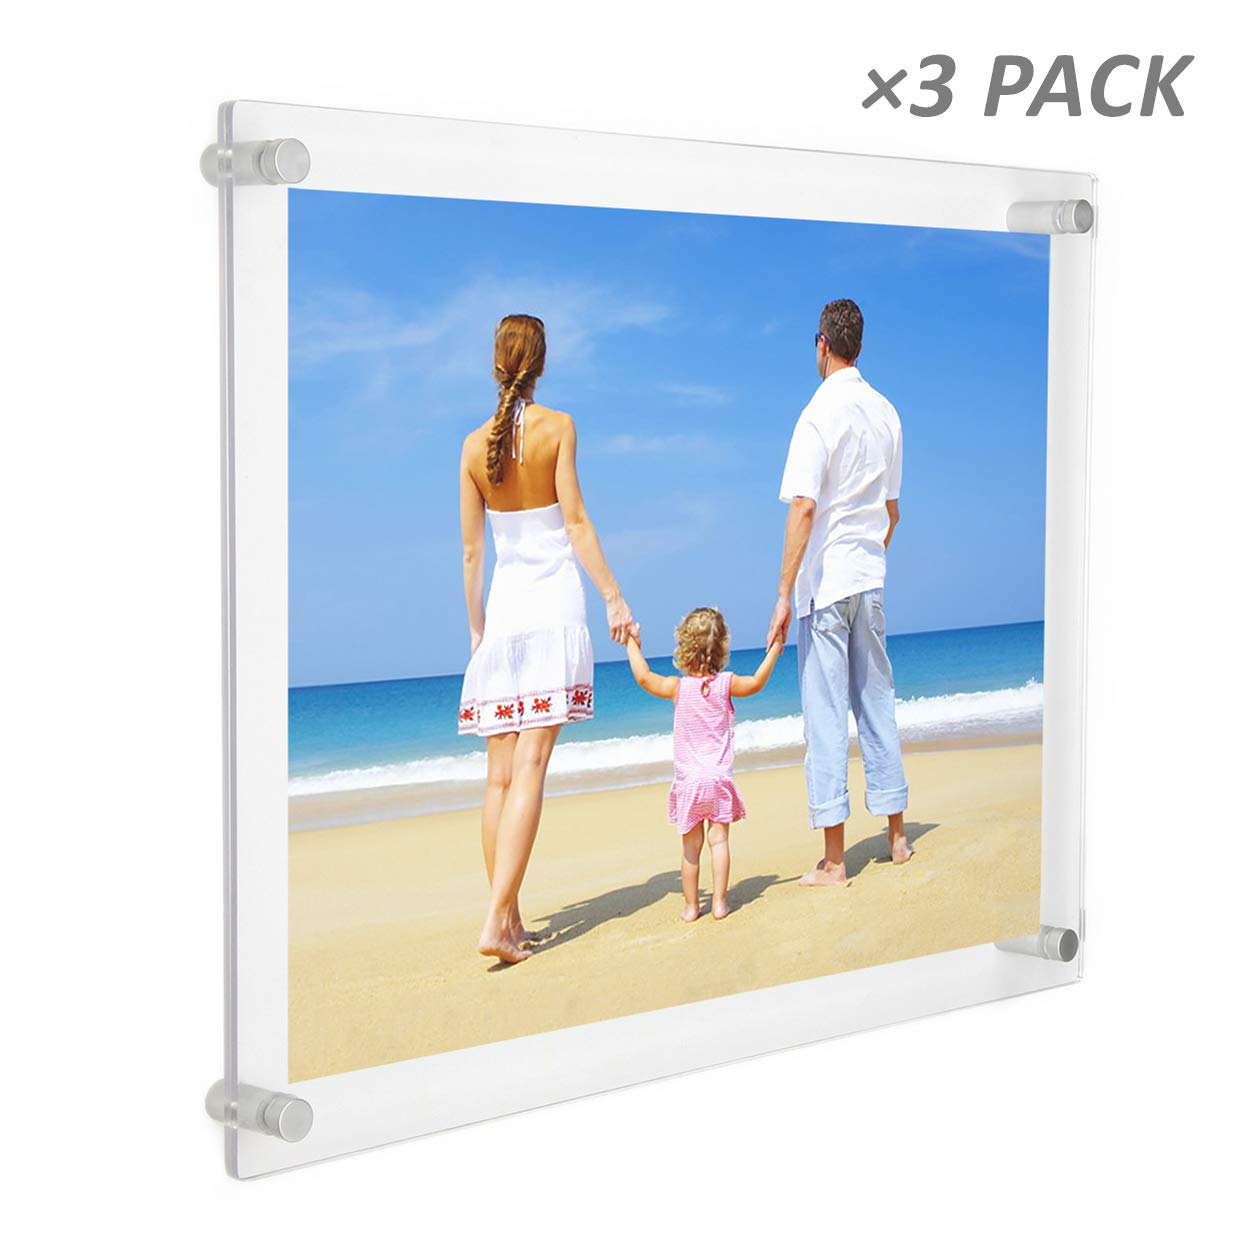 NIUBEE 3Pack 8.5x11 Clear Acrylic Wall Mount Picture Frame Floating Frames for Photography Display NBPN-862K